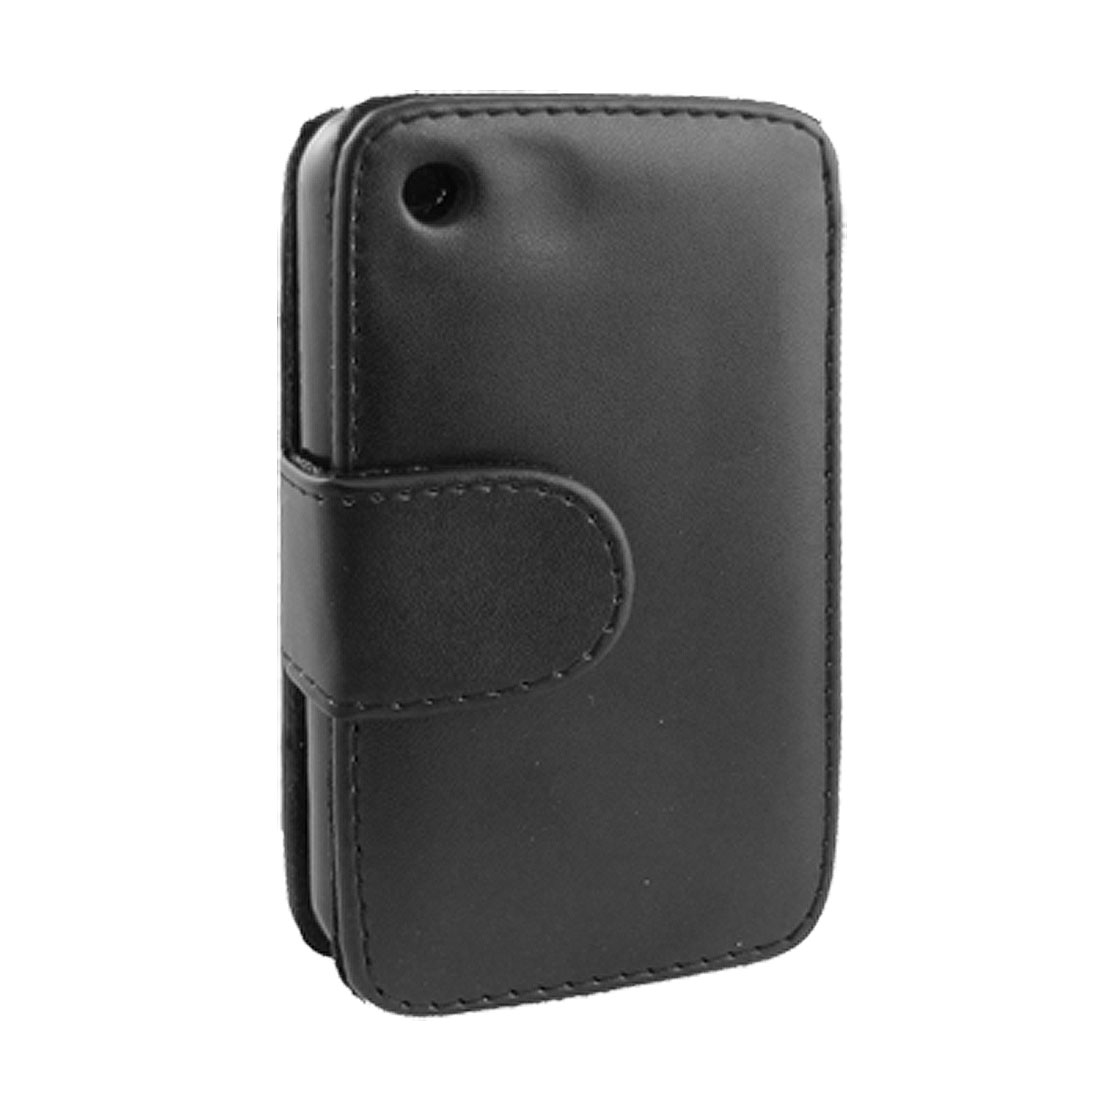 Magnetic Black Faux Leather Pouch Holder for iPhone 3G